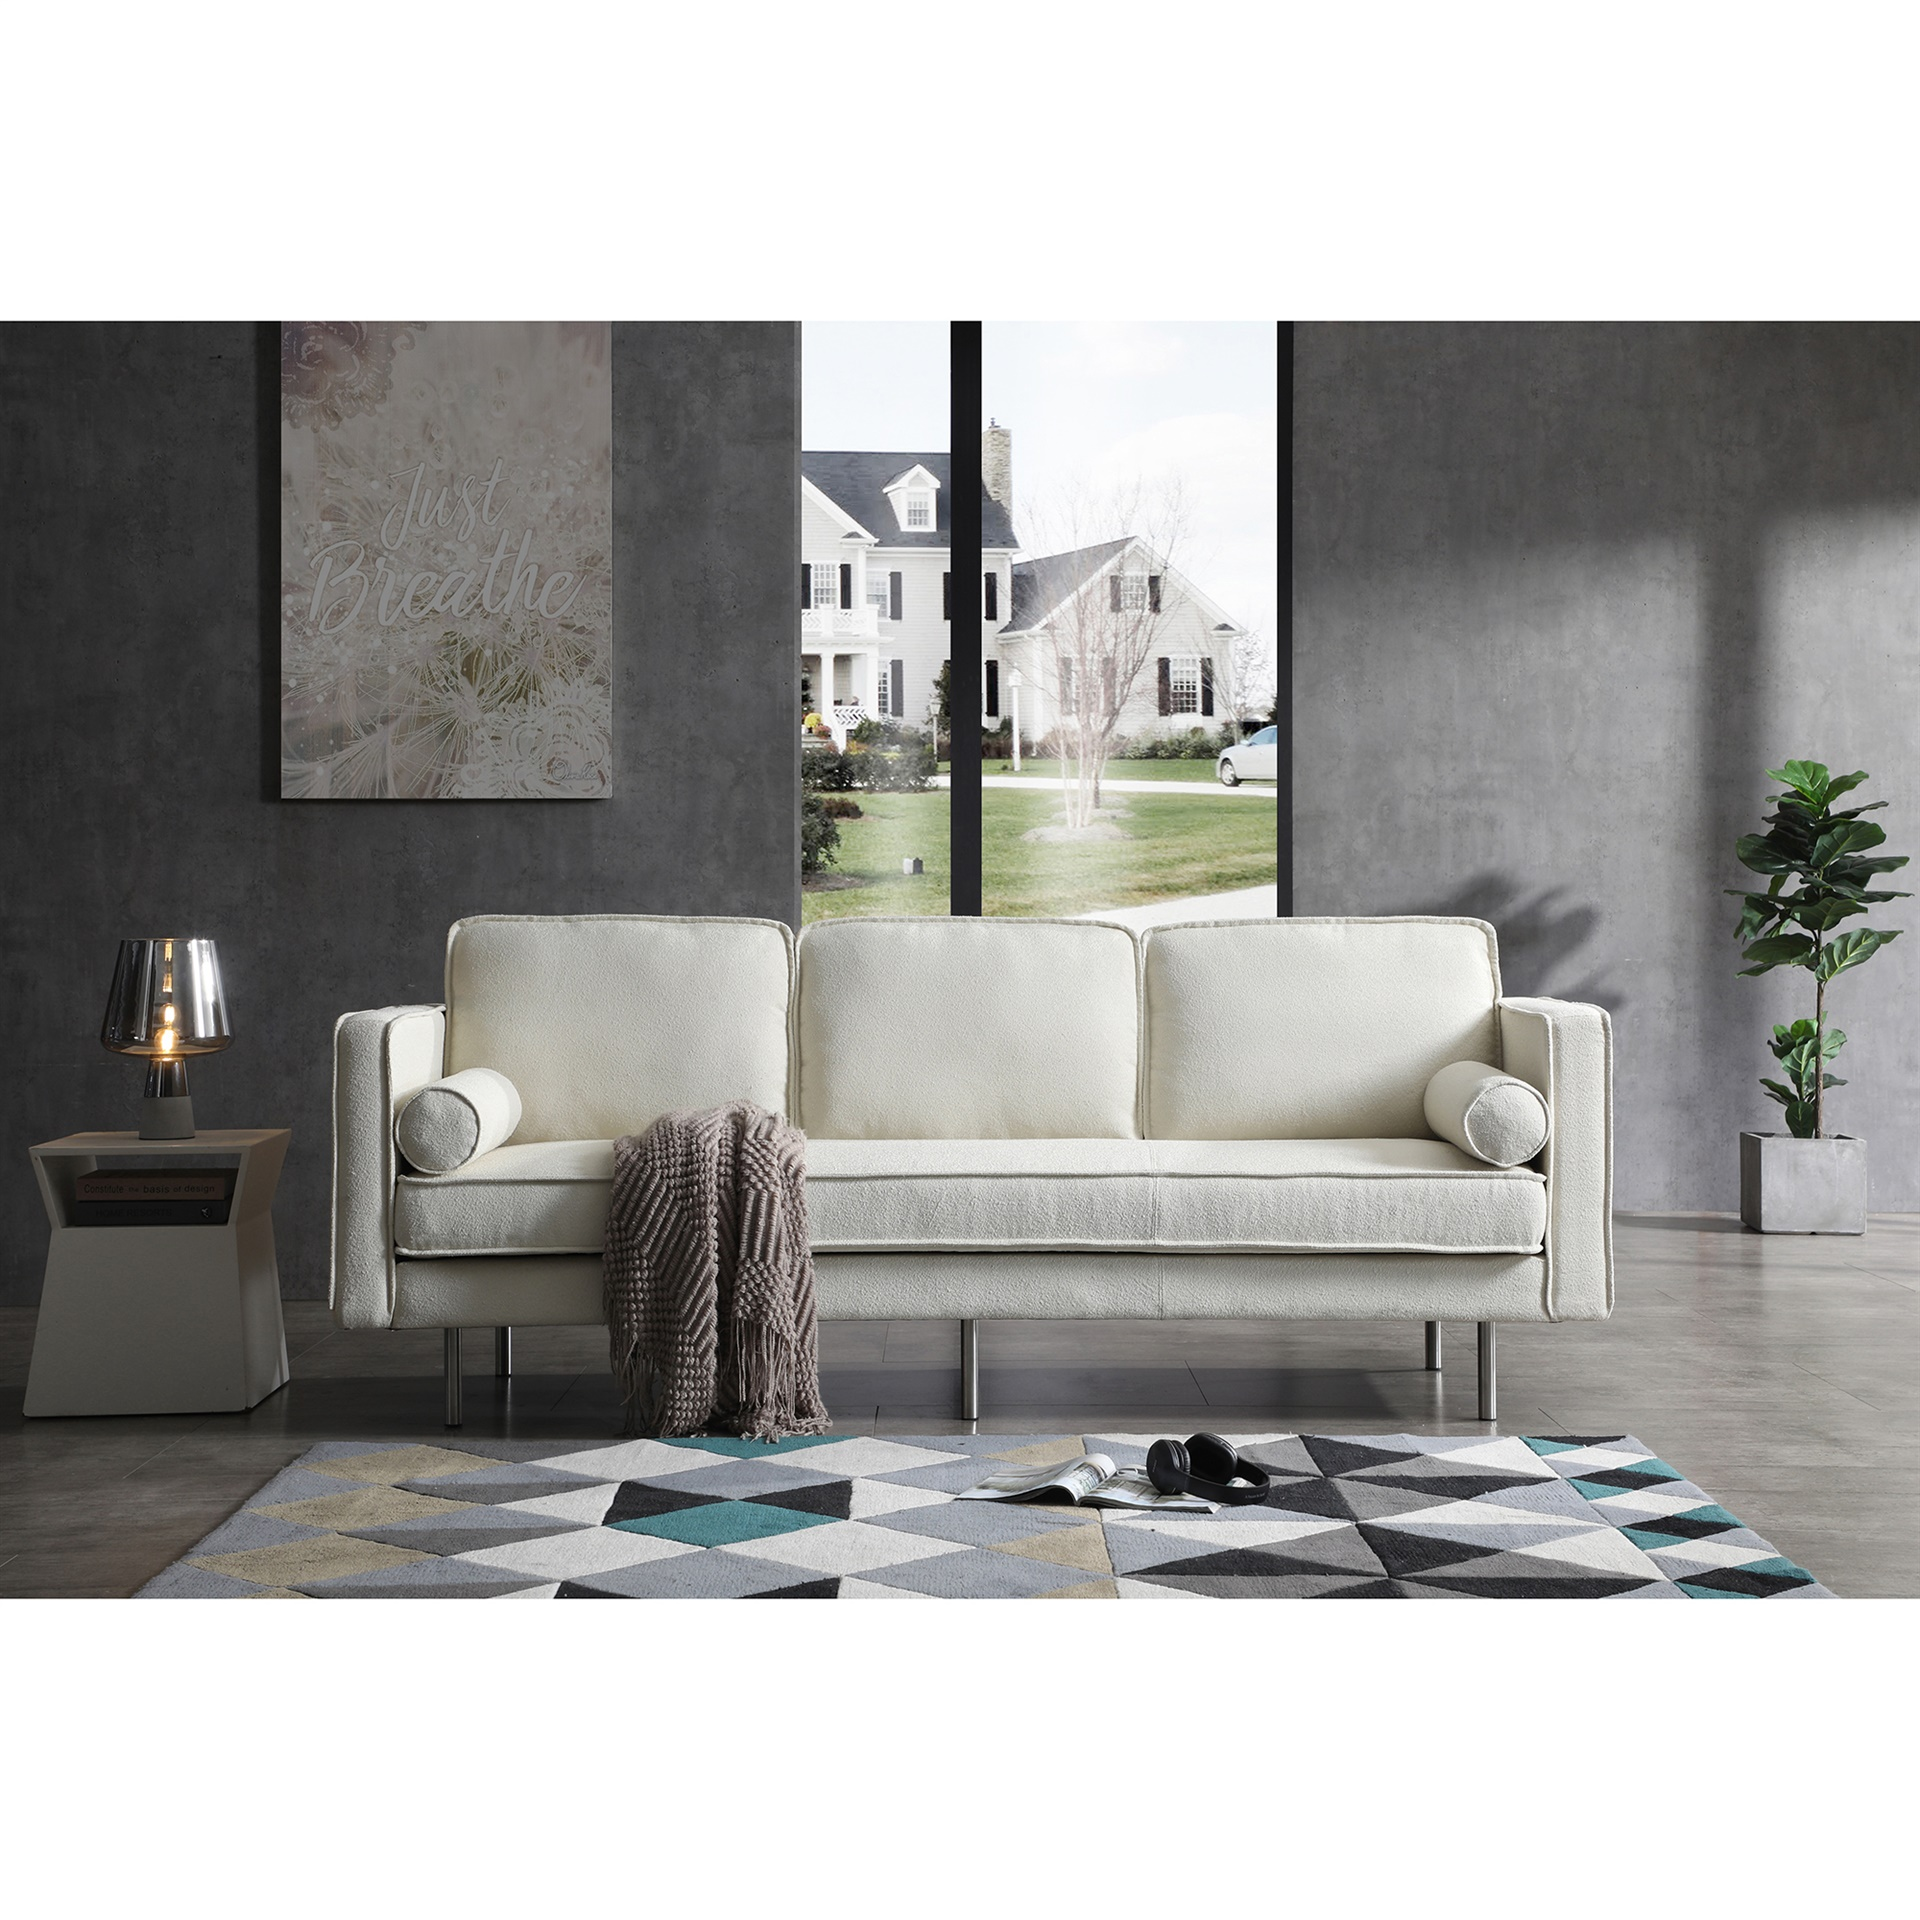 8 Modern Sofa Designs You Want In Your Living Room Padstyle Interior Design Blog Modern Furniture Home Decor